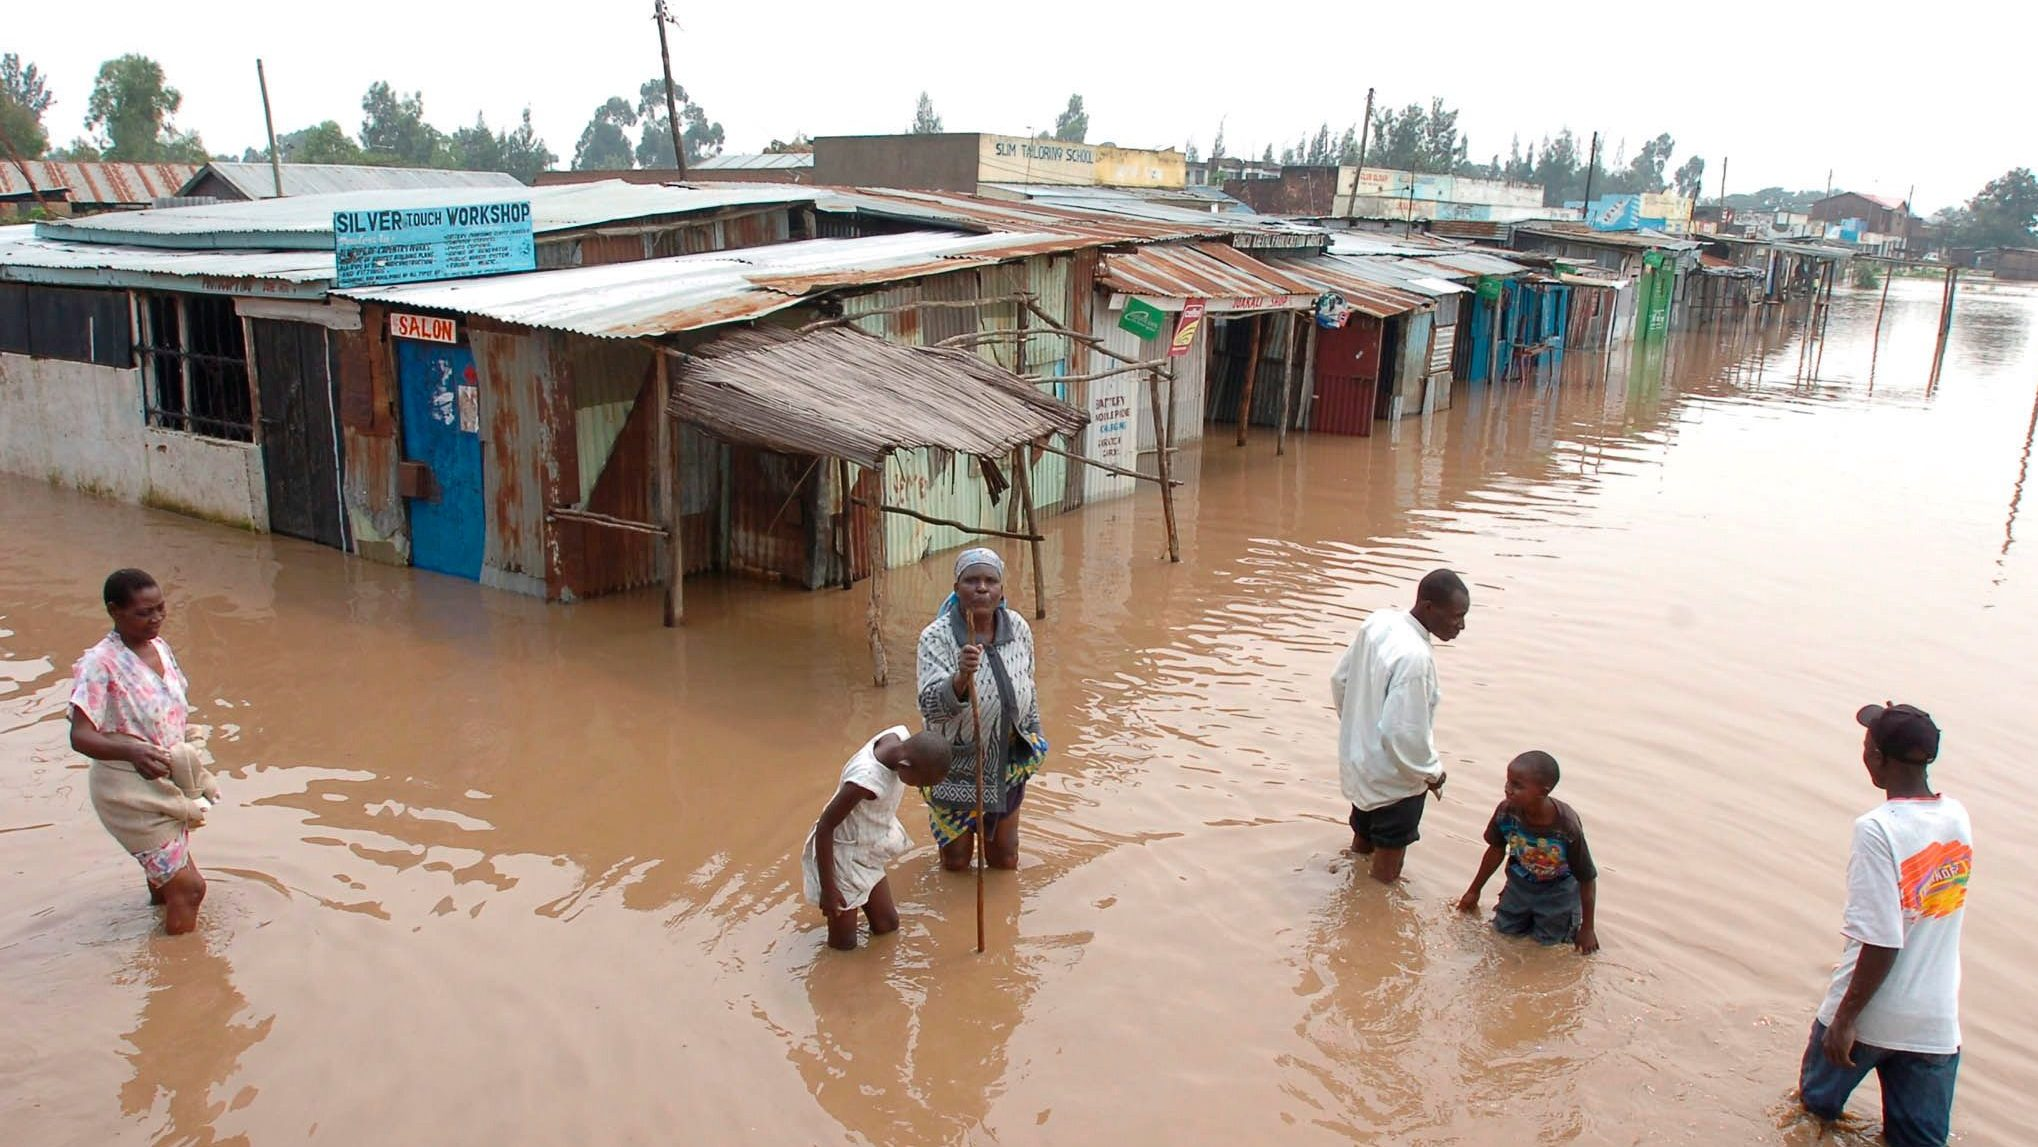 Villagers go about their business in a flooded market centre in Kisumu, about 400km west of the capital Nairobi in Kenya on Saturday 30 December 2006. Heavy rains continue to cause havoc in Kenya and parts of East Africa.